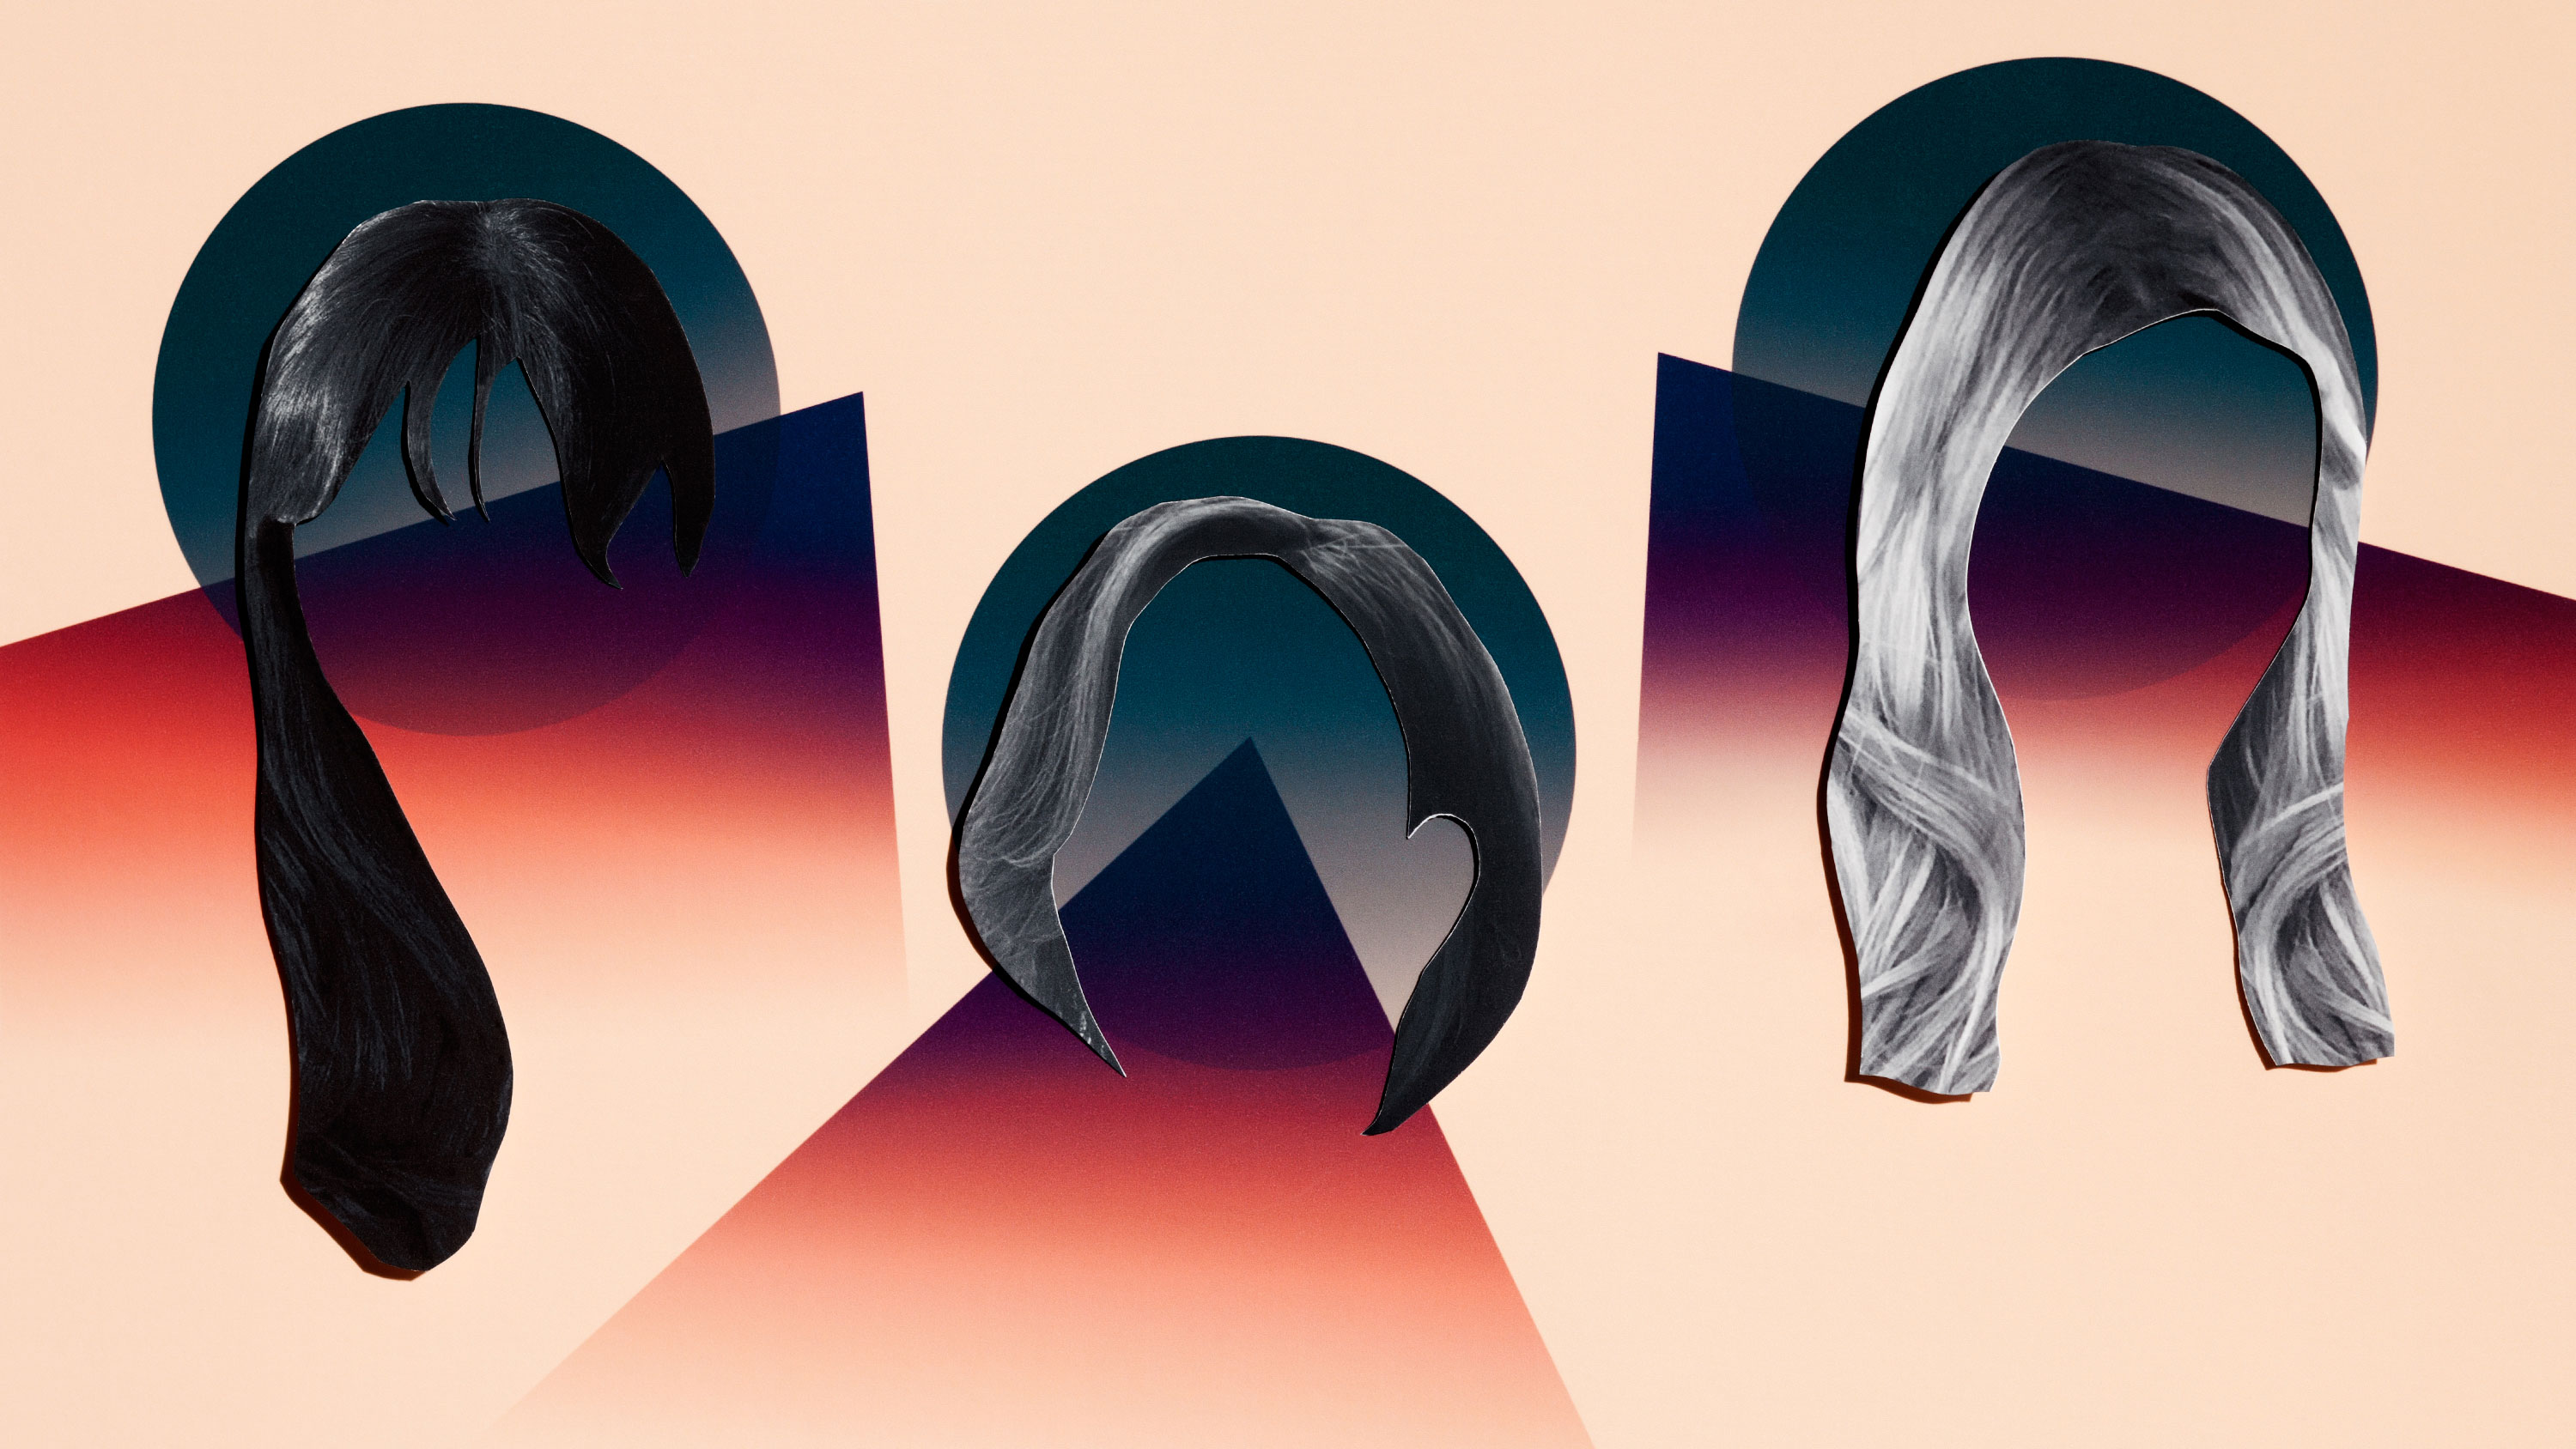 conceptual illustration of 3 women's silhouetted faces